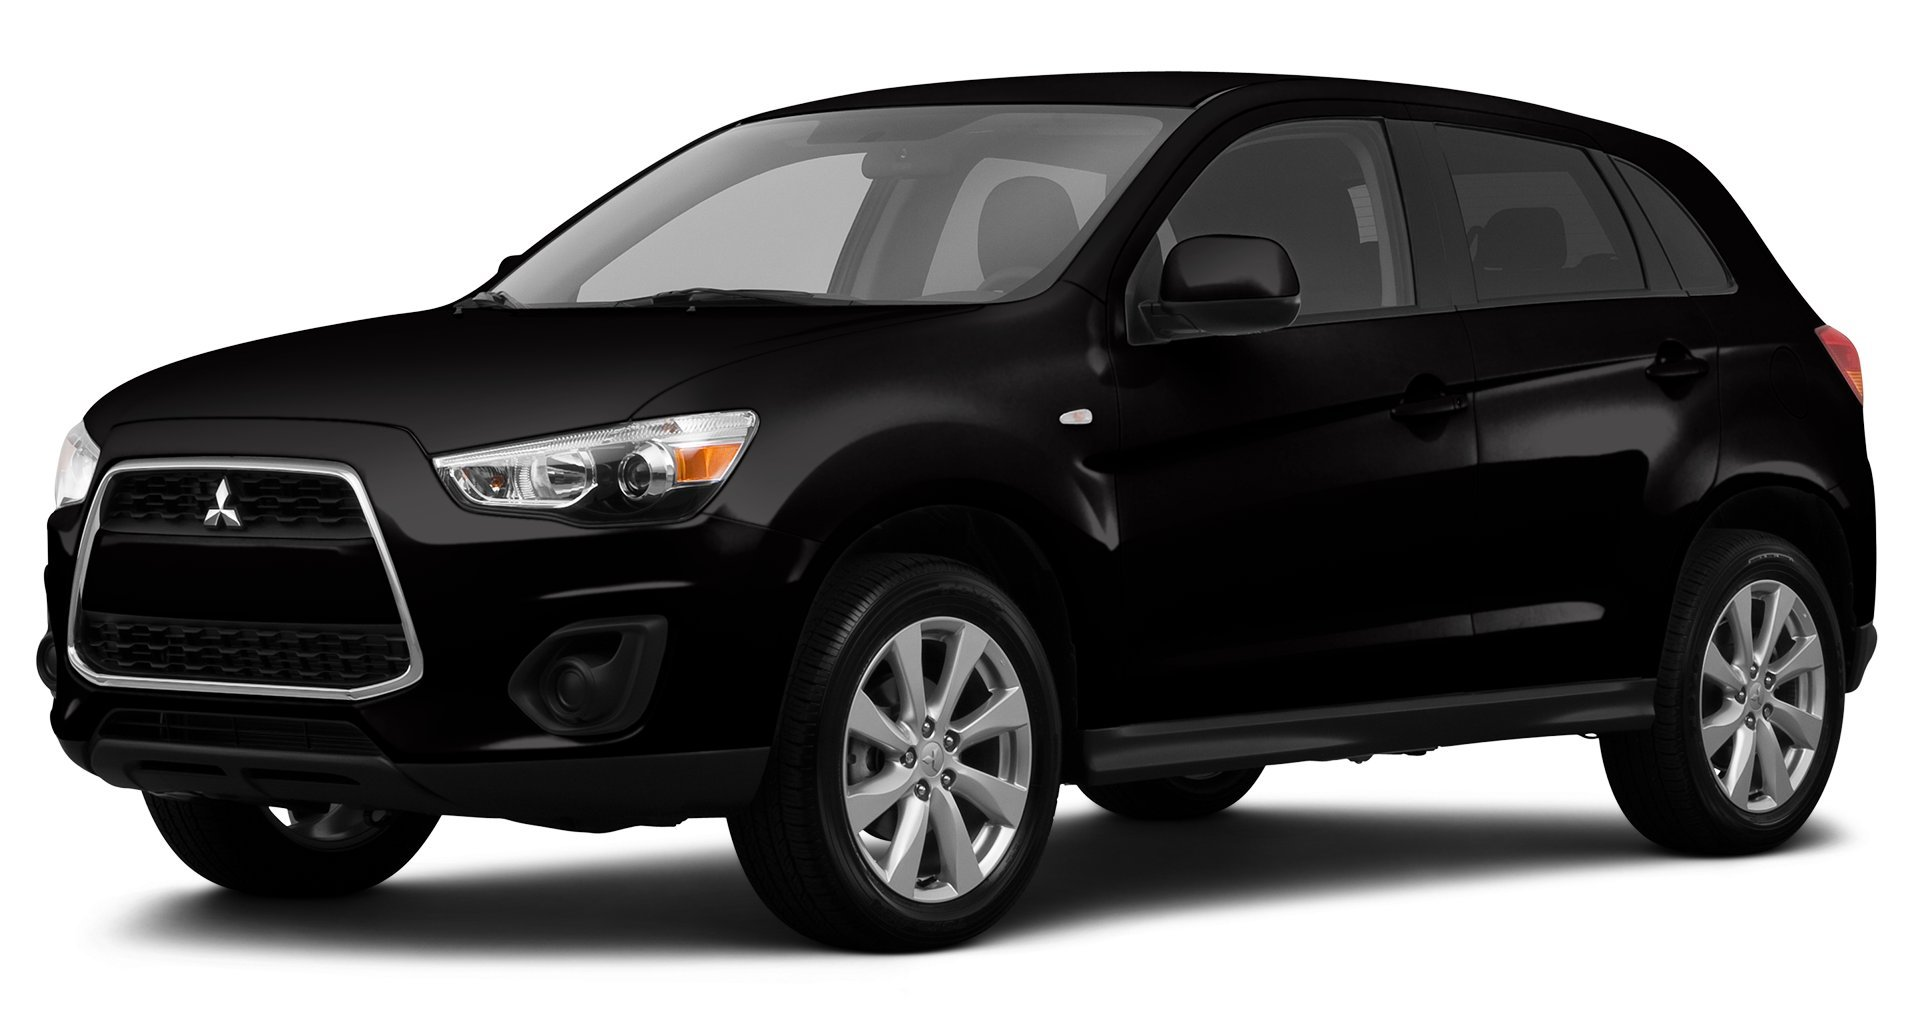 2013 nissan rogue reviews images and specs vehicles. Black Bedroom Furniture Sets. Home Design Ideas